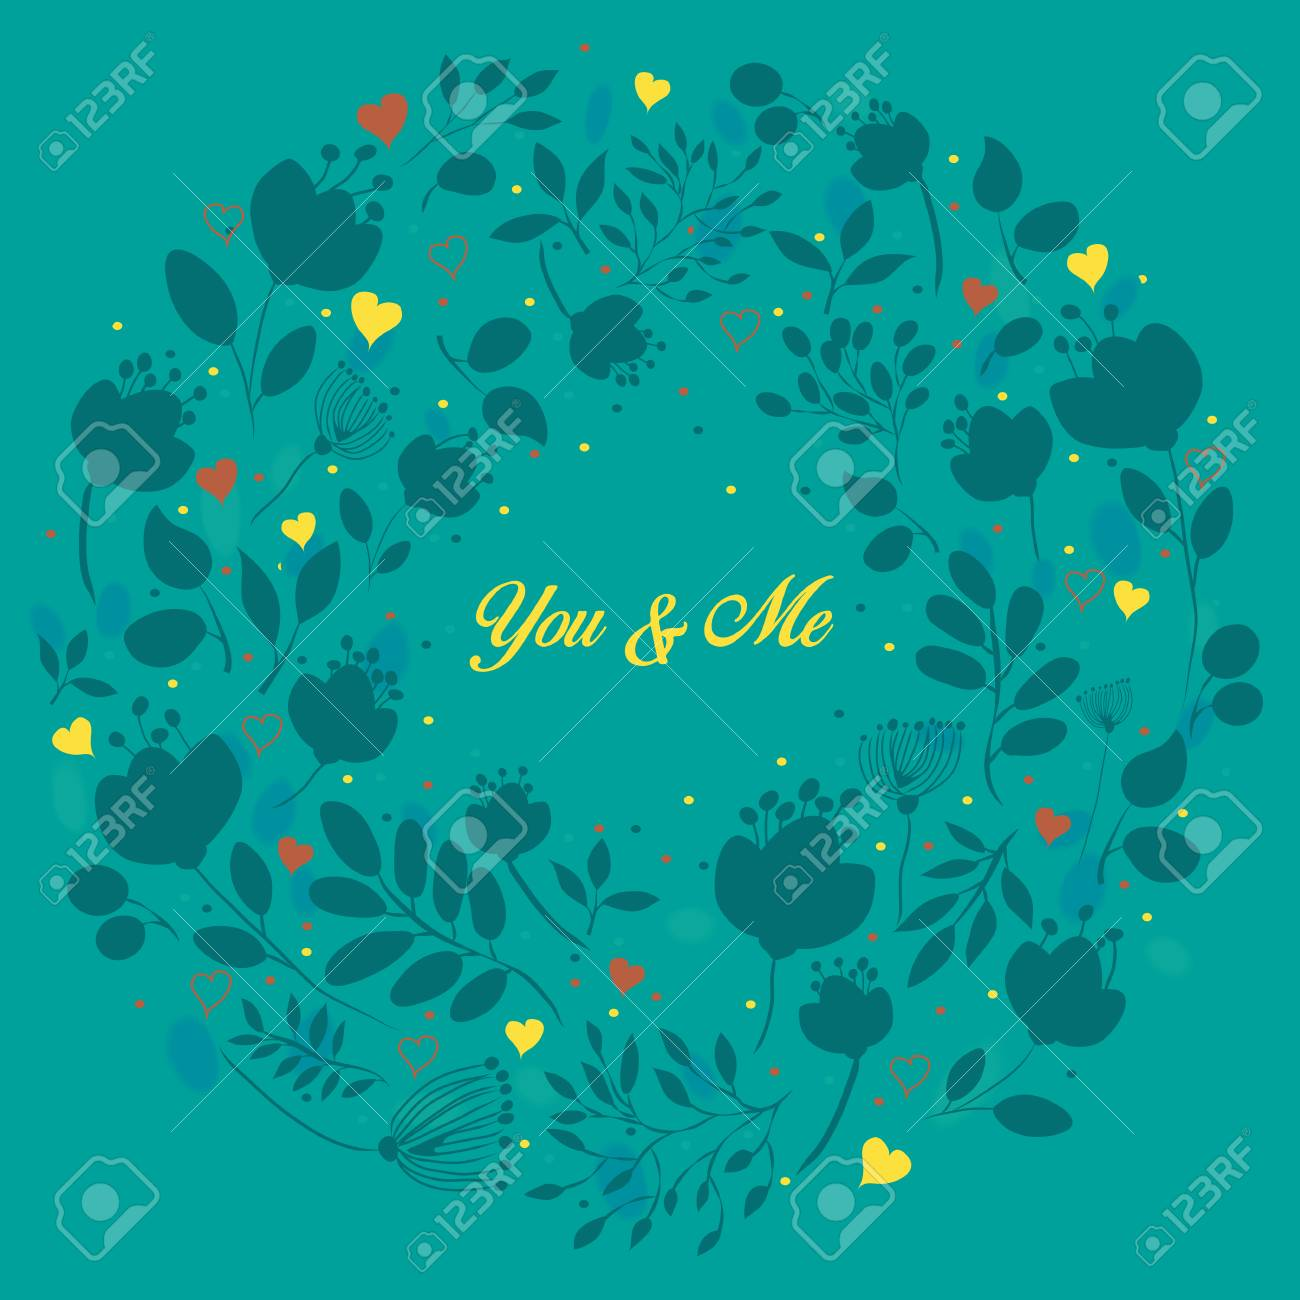 Blue floral ring you and me yellow inscription graceful blue blue floral ring you and me yellow inscription graceful blue flowers and plants izmirmasajfo